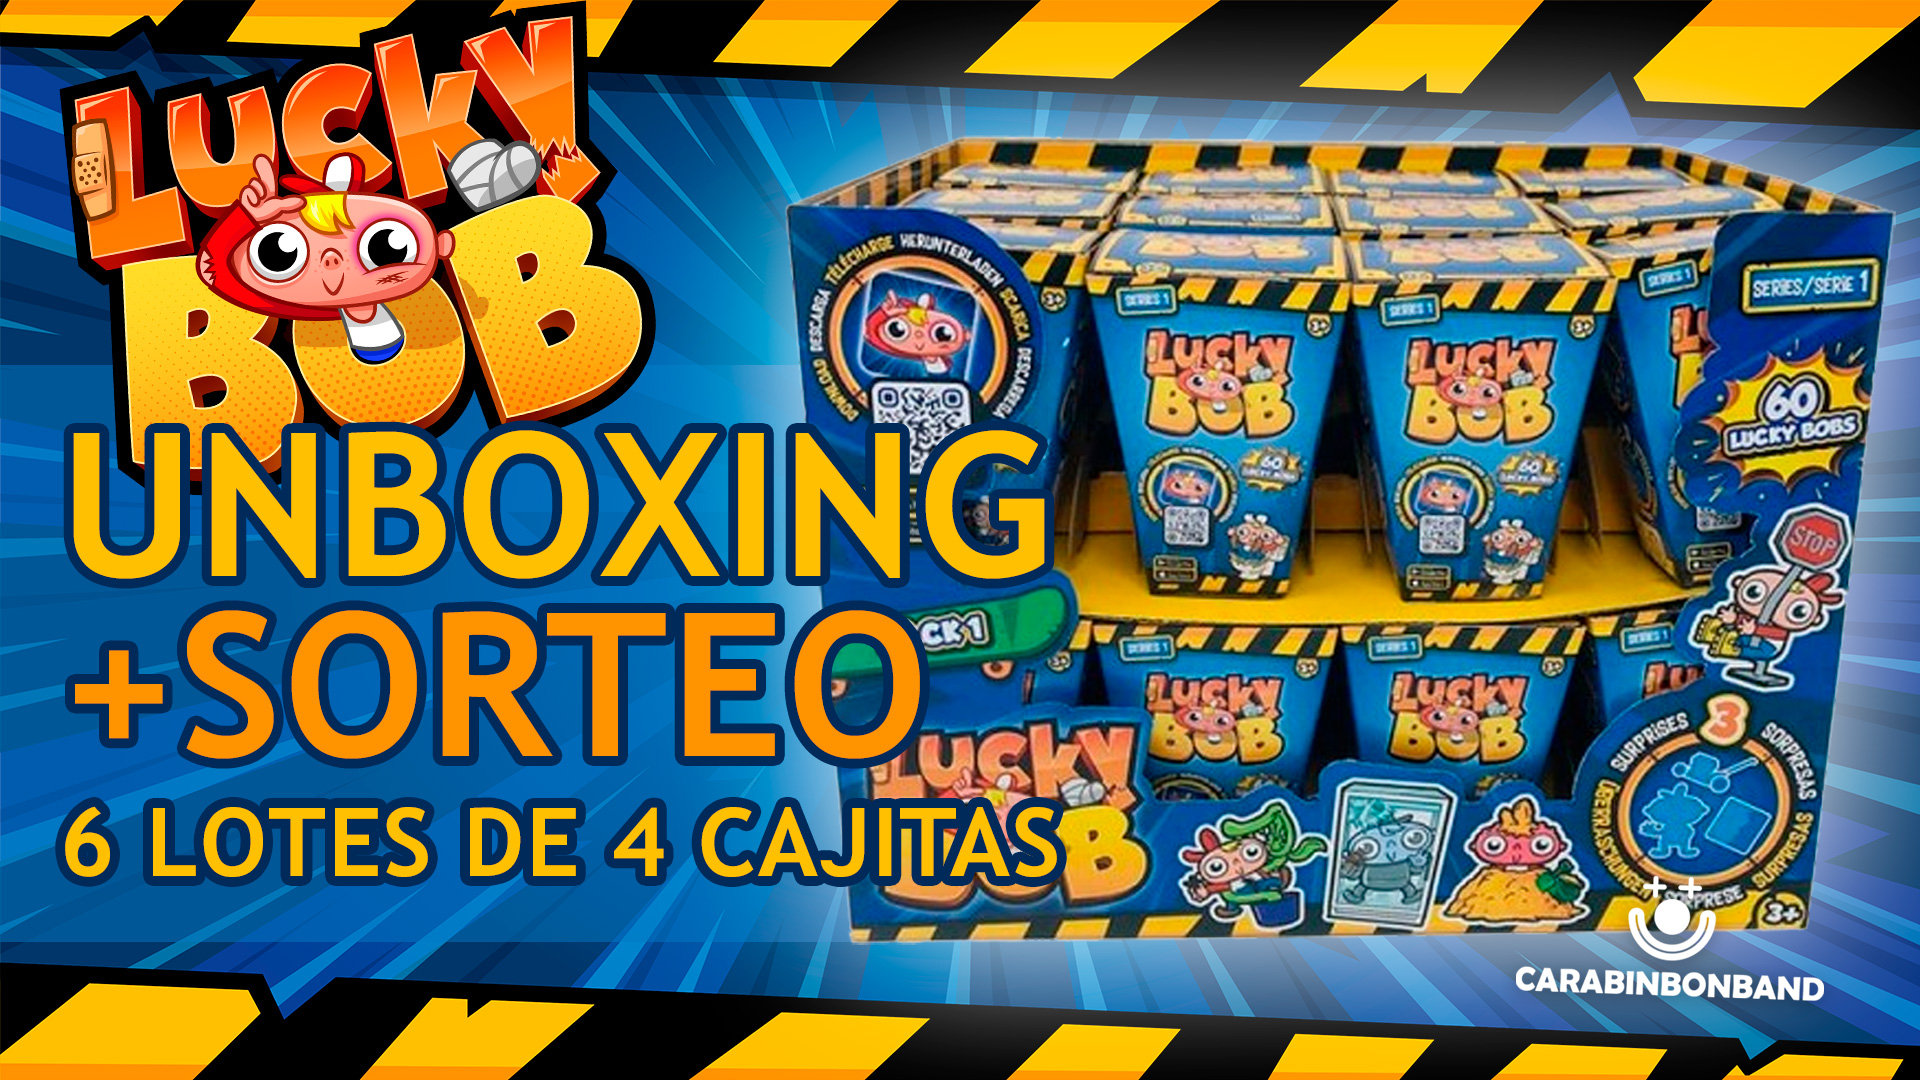 LUCKY BOB - UNBOXING Y SORTEO PACK 24 CAJAS INDIVIDUALES SERIES 1